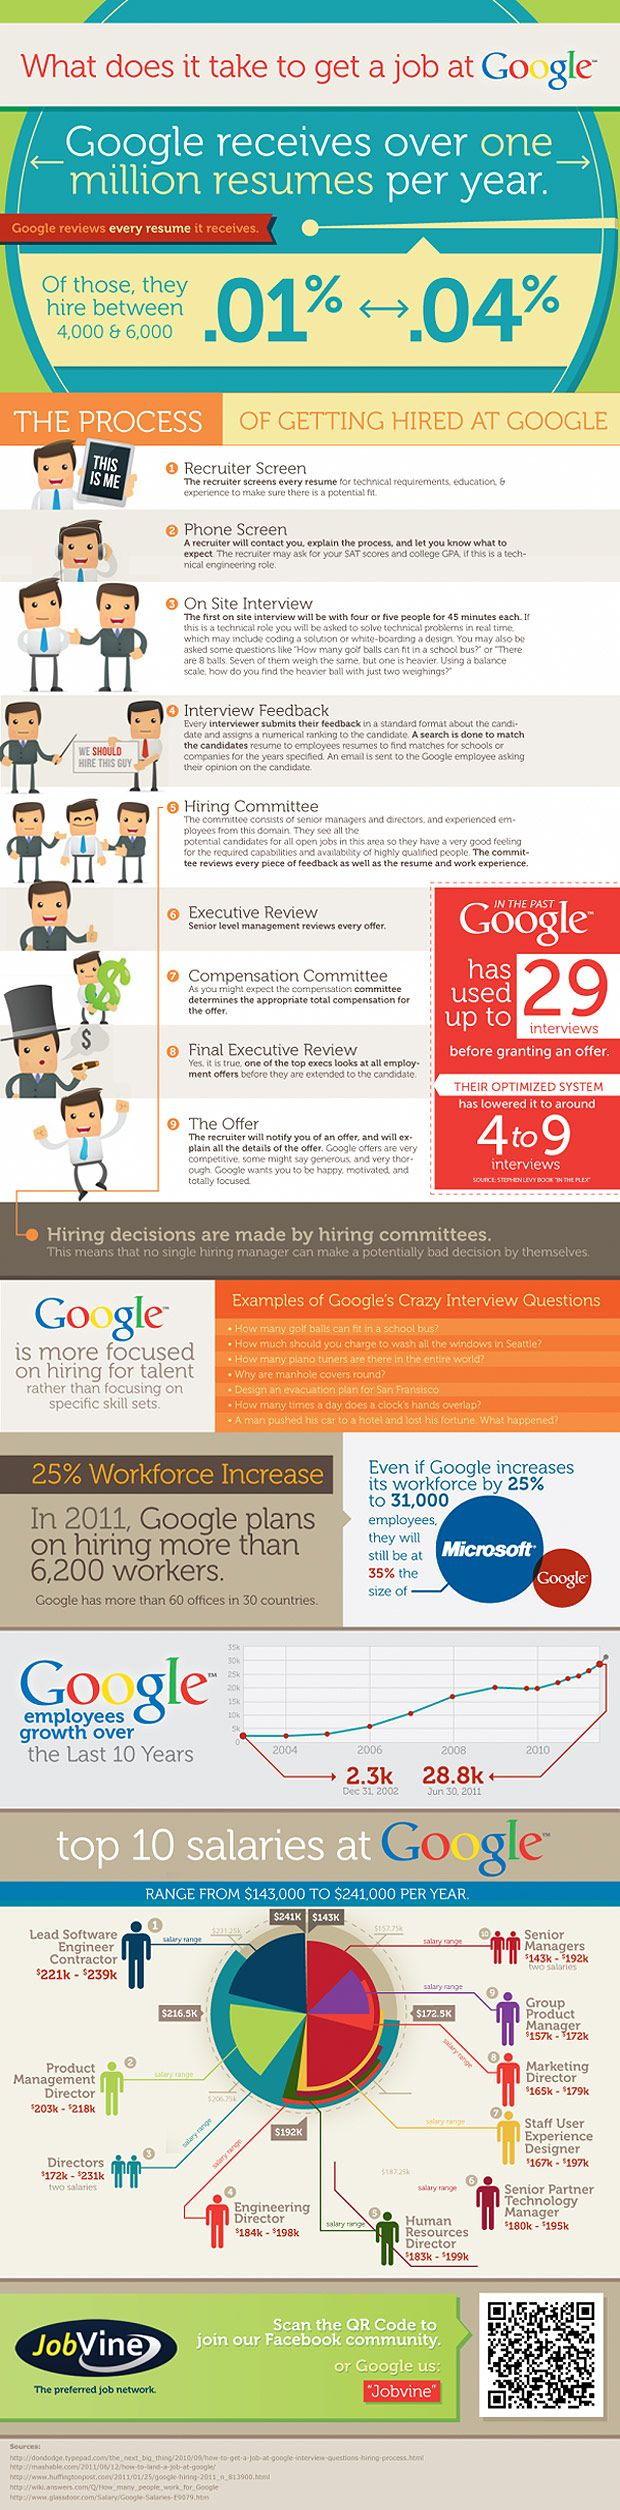 best images about career job related interview what does it take to get a job at google infographic